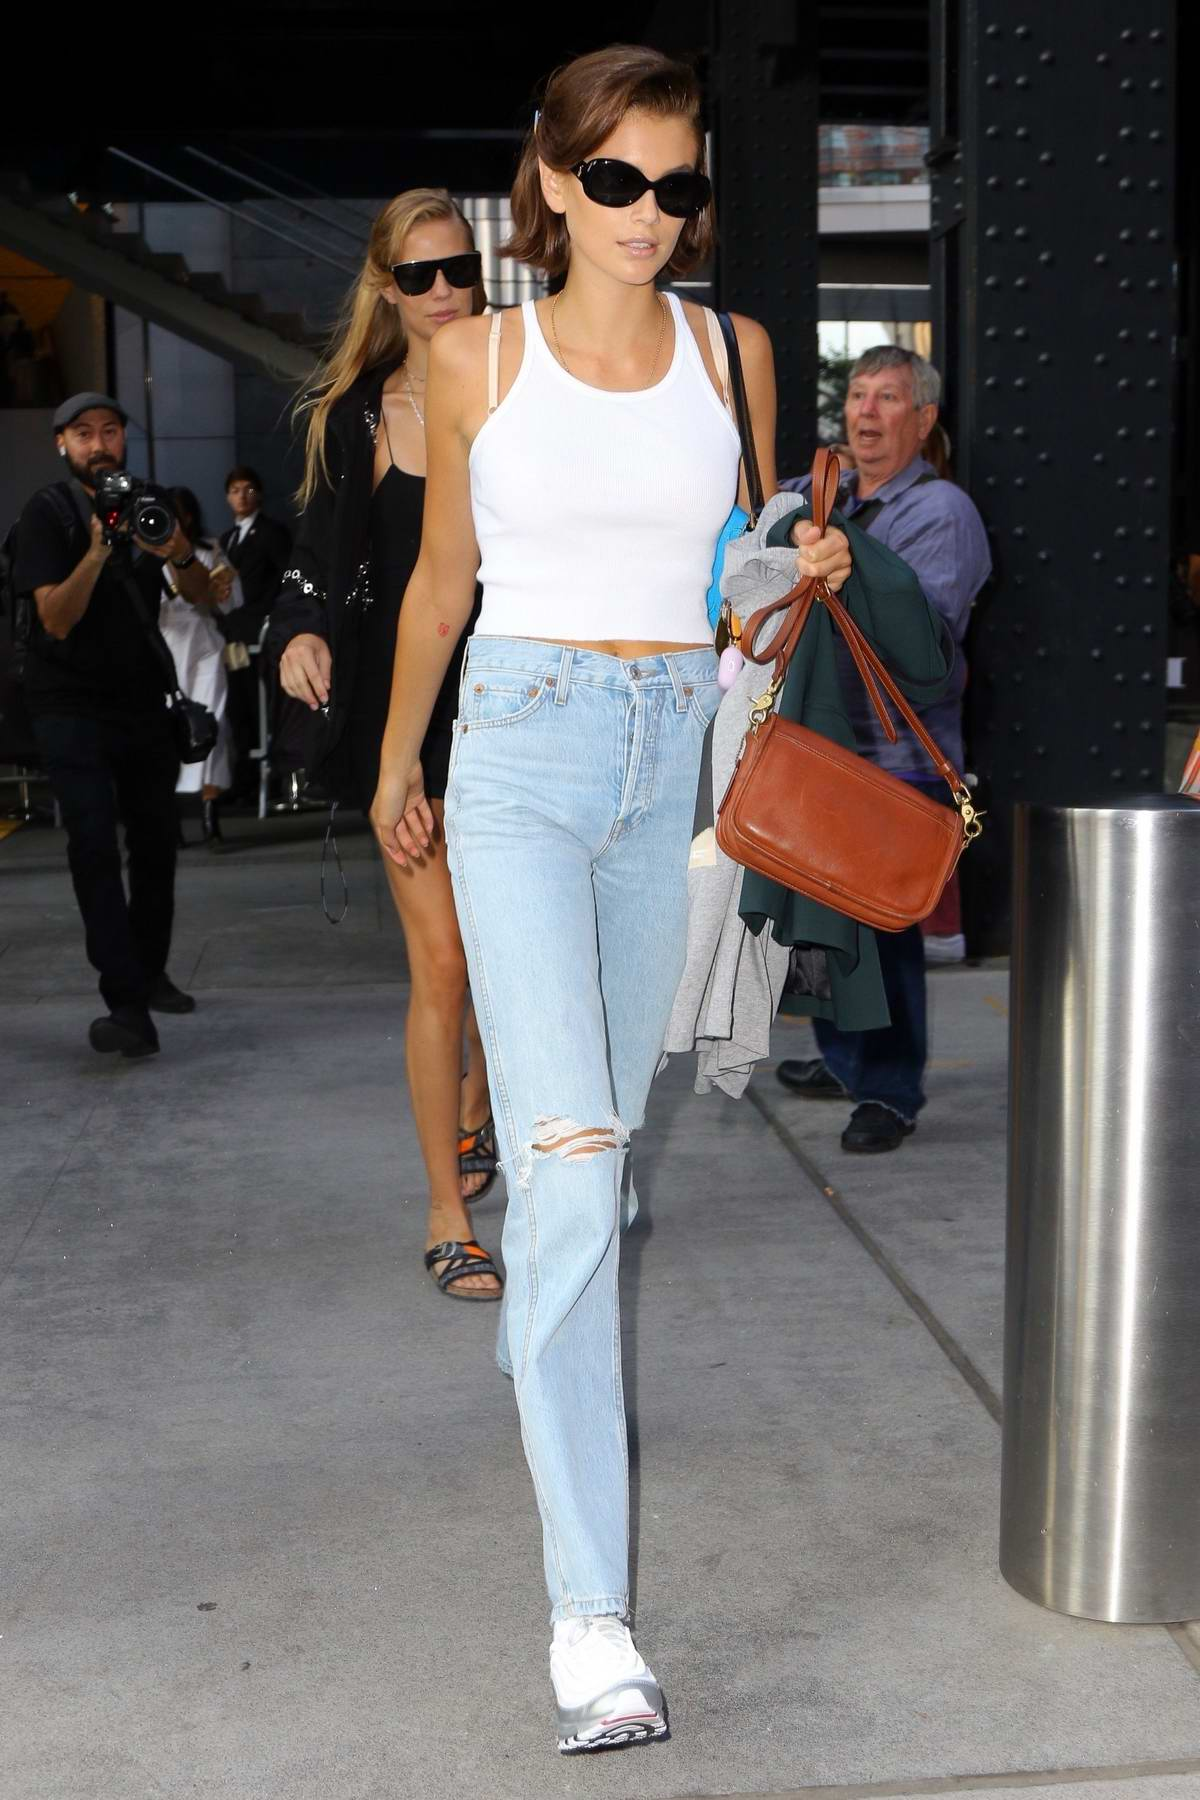 Kaia Gerber sports a new hairstyle as she leaves a fashion show during NYFW in New York City